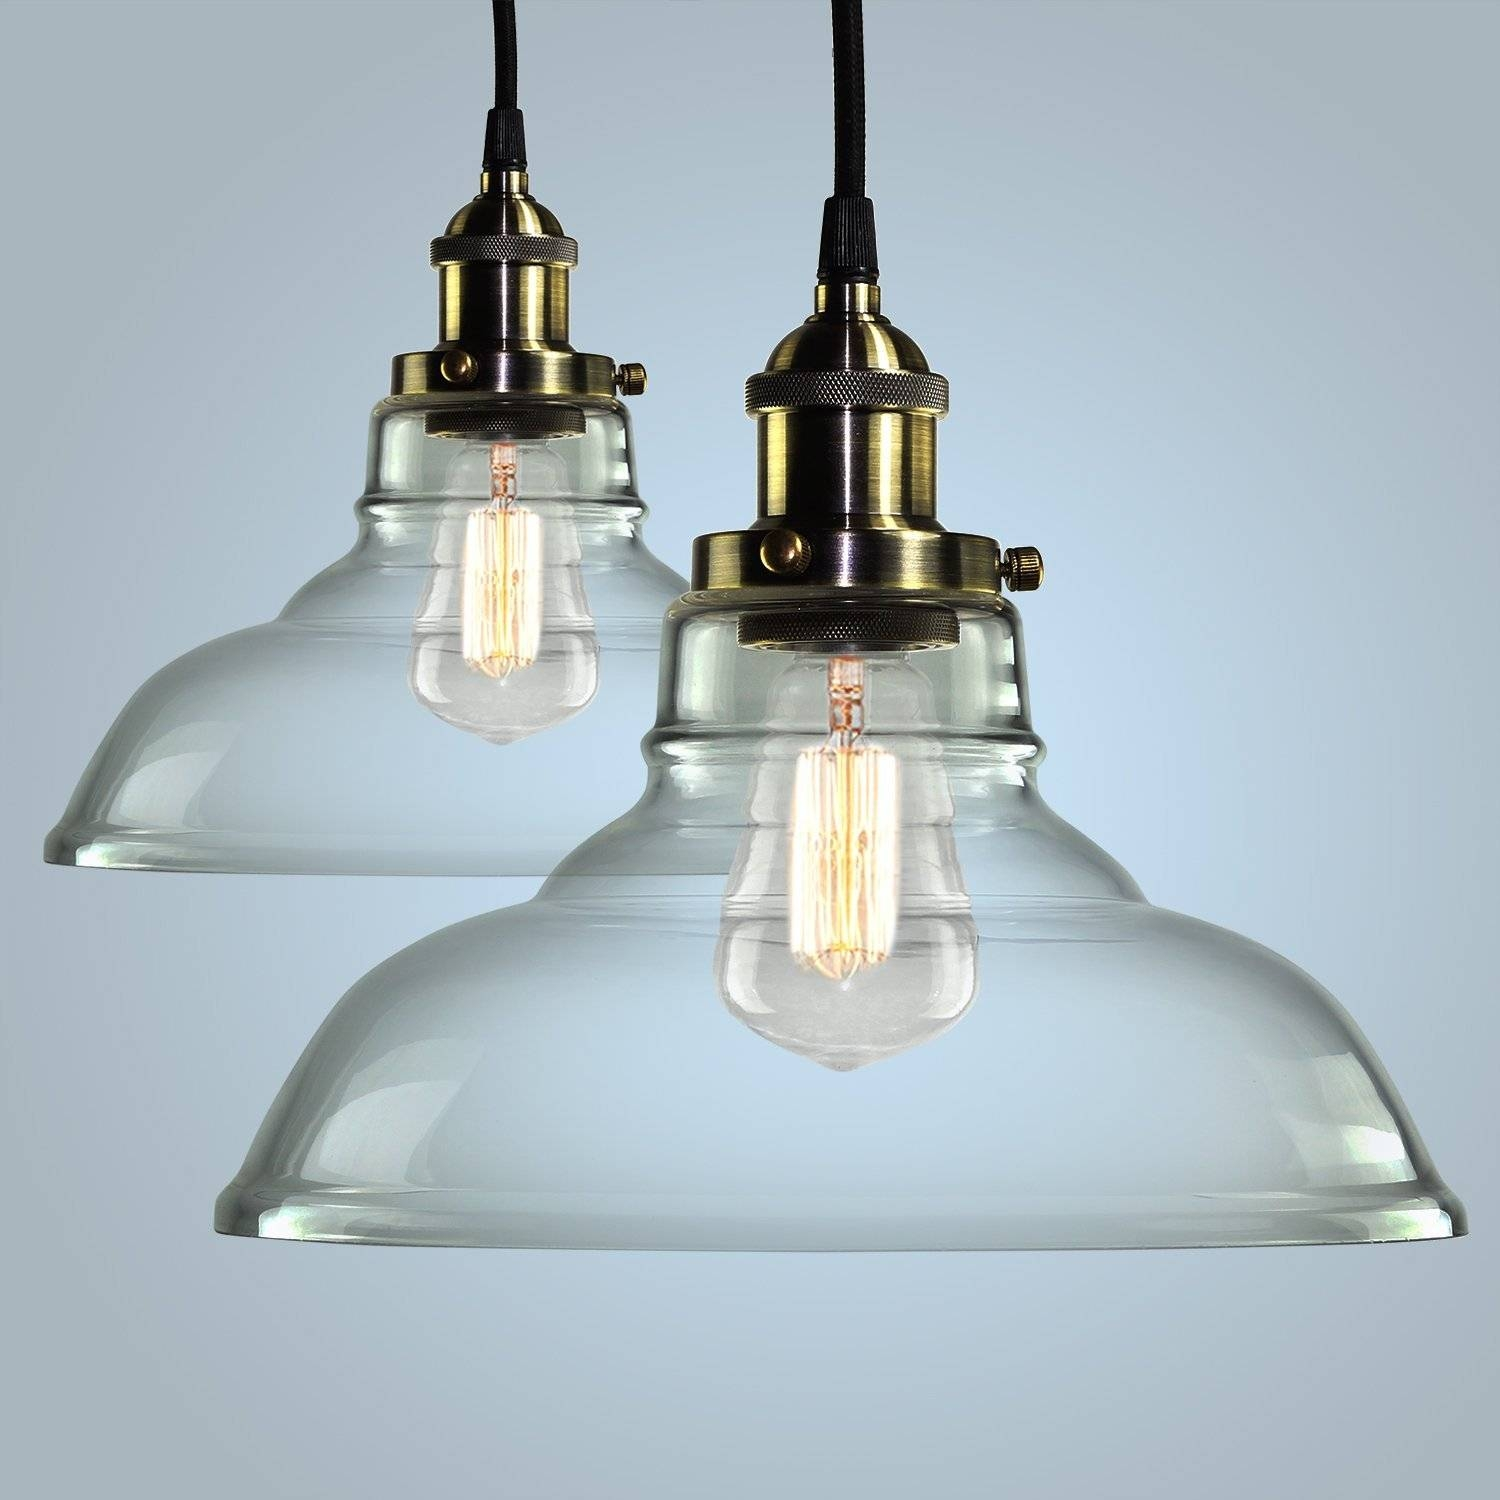 Lamp : Star Pendant Light Glass Pendant Lights For Kitchen Island regarding Industrial Glass Pendant Lights (Image 9 of 15)